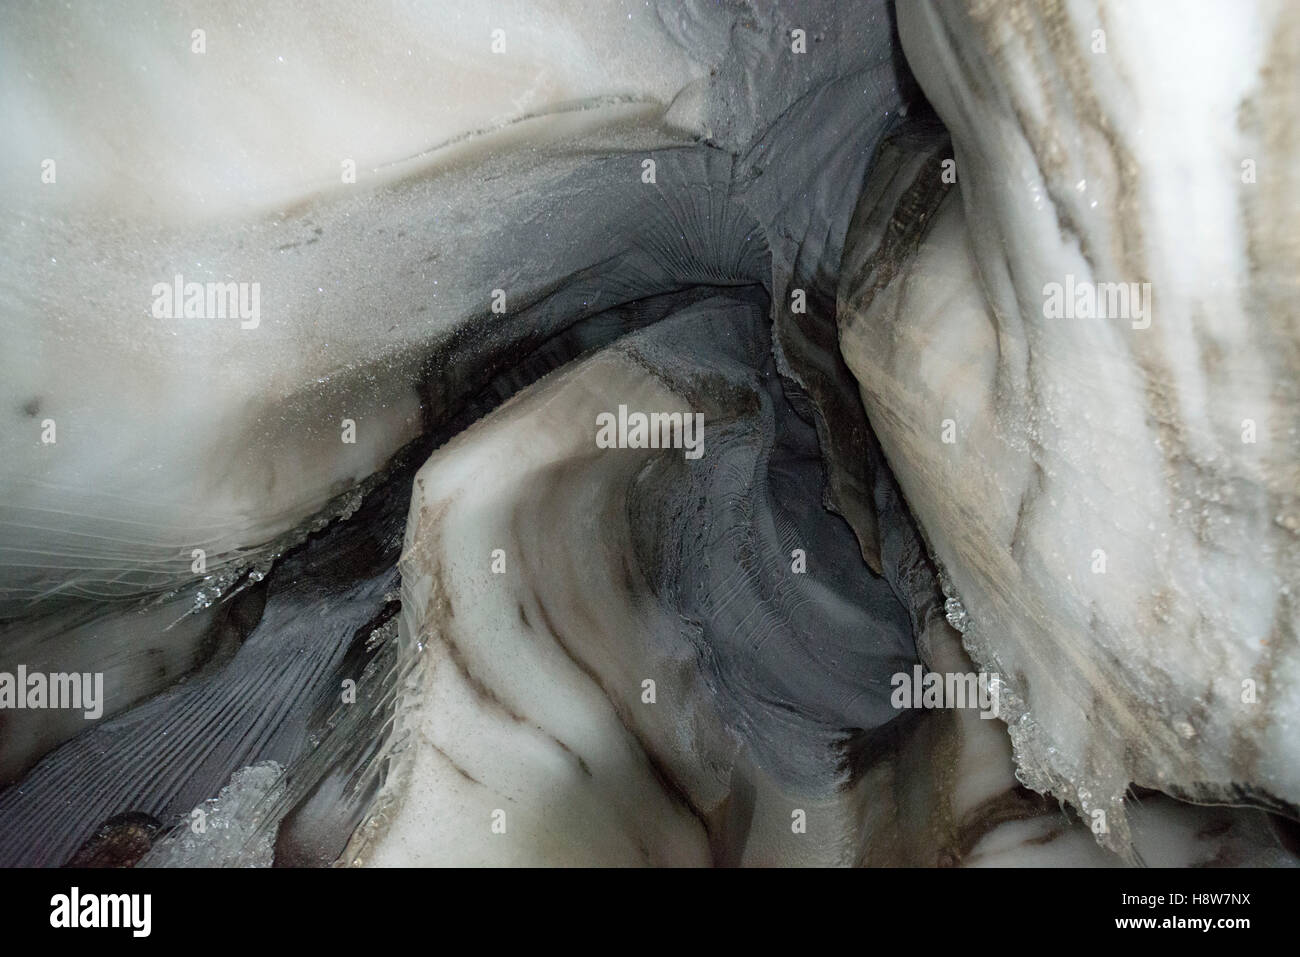 Close up of an ice cave in Larsbreen, Svalbard, Spitsbergen, Norway Nahaufnahme der Gletscherhöhle des Larsbreen - Stock Image